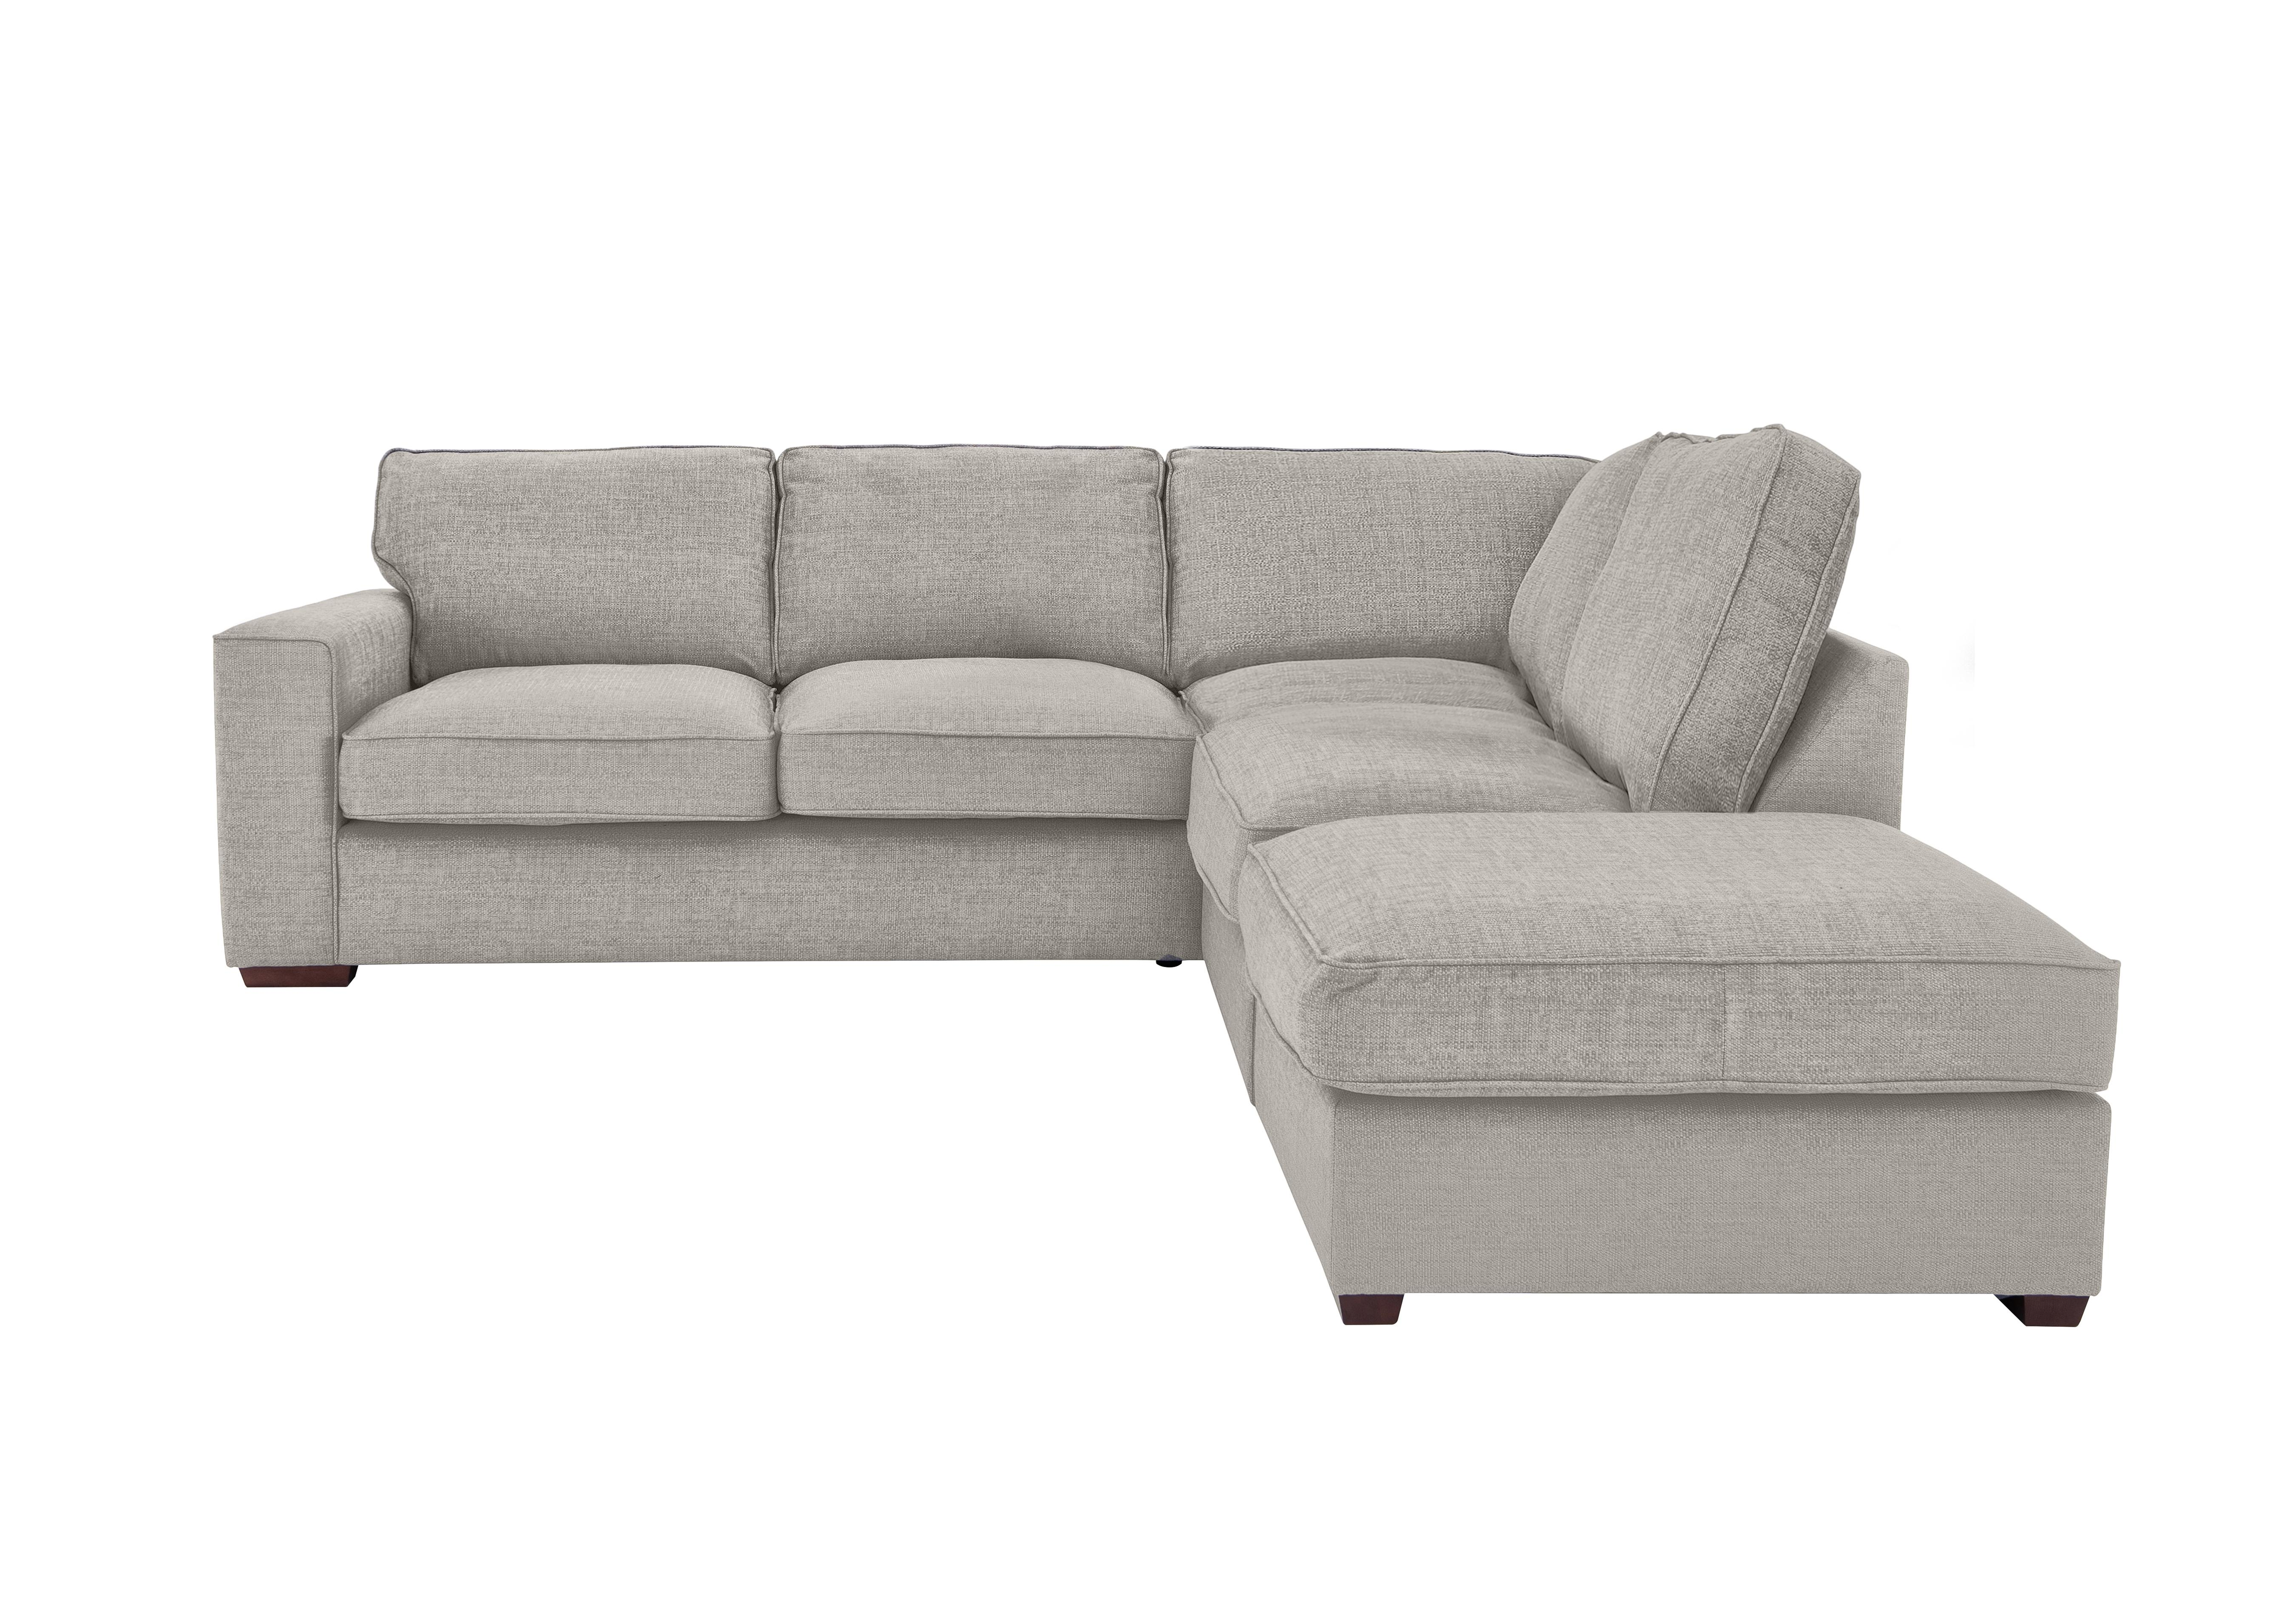 Seasons Classic Back Fabric Corner Sofa - Furniture Village